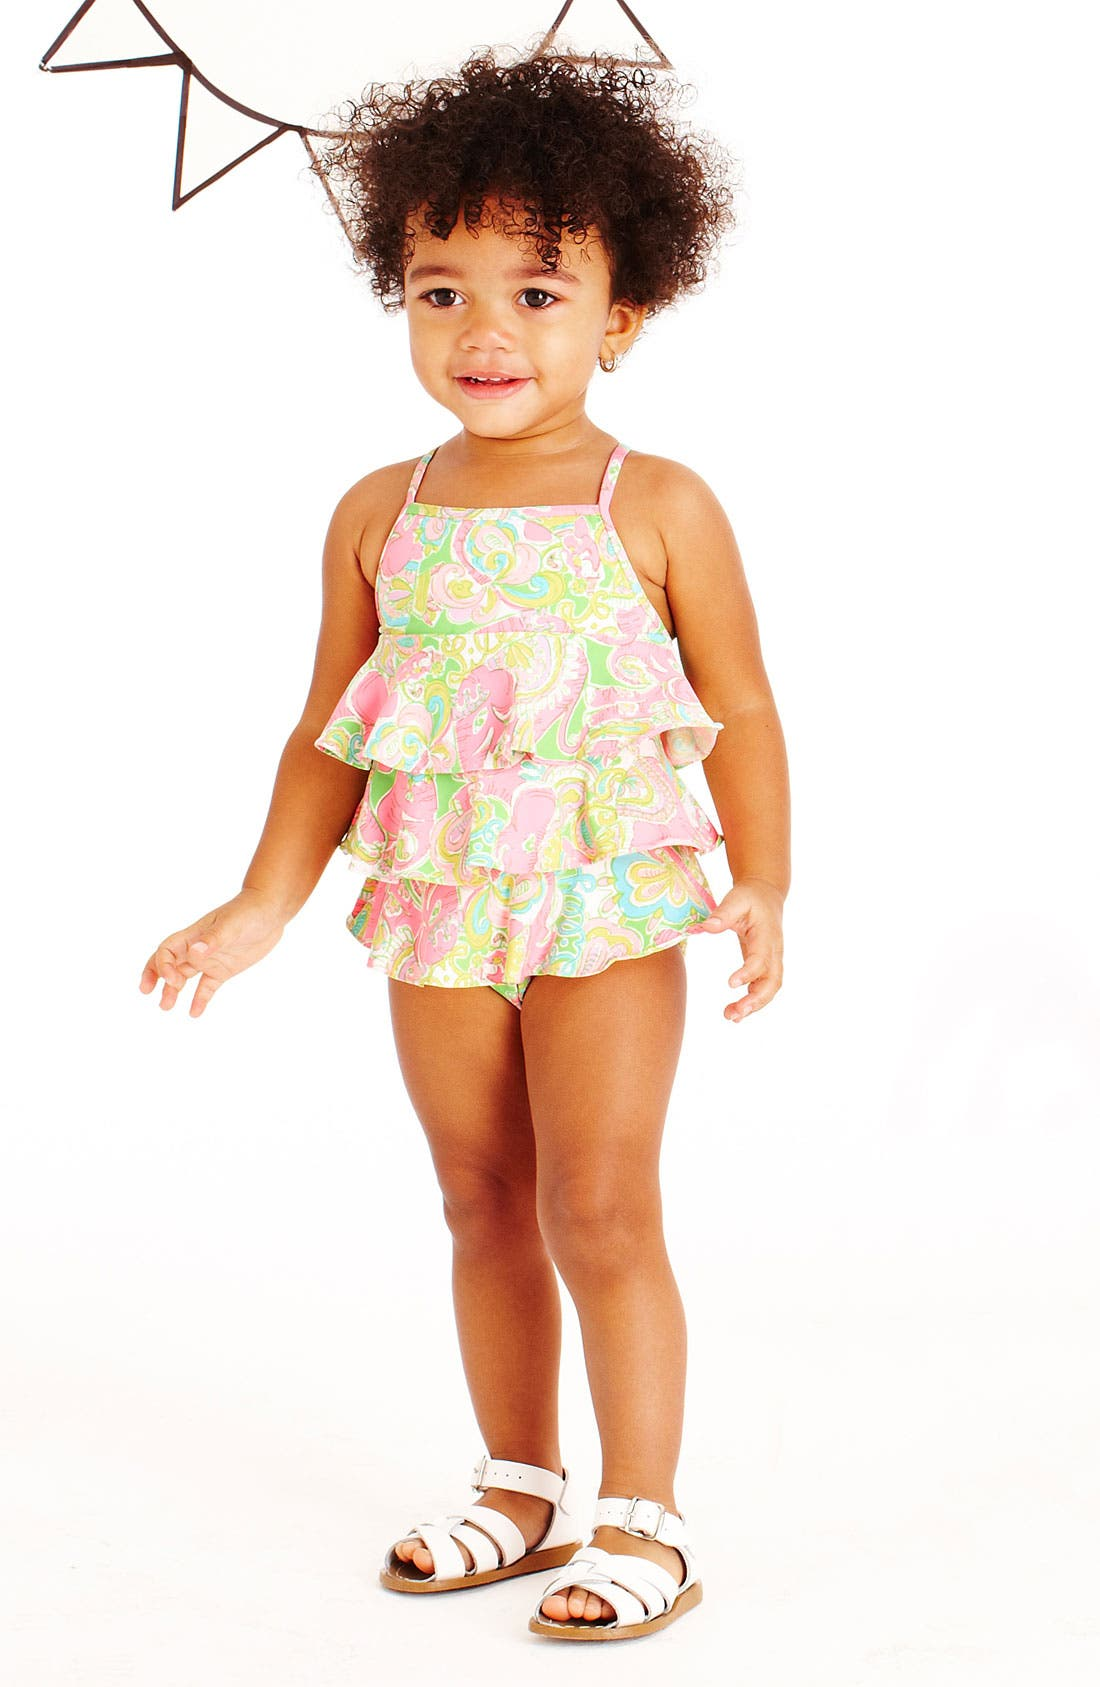 Alternate Image 1 Selected - Lilly Pulitzer® Swimsuit & Hoy Shoe Salt-Water® Sandals (Infant)